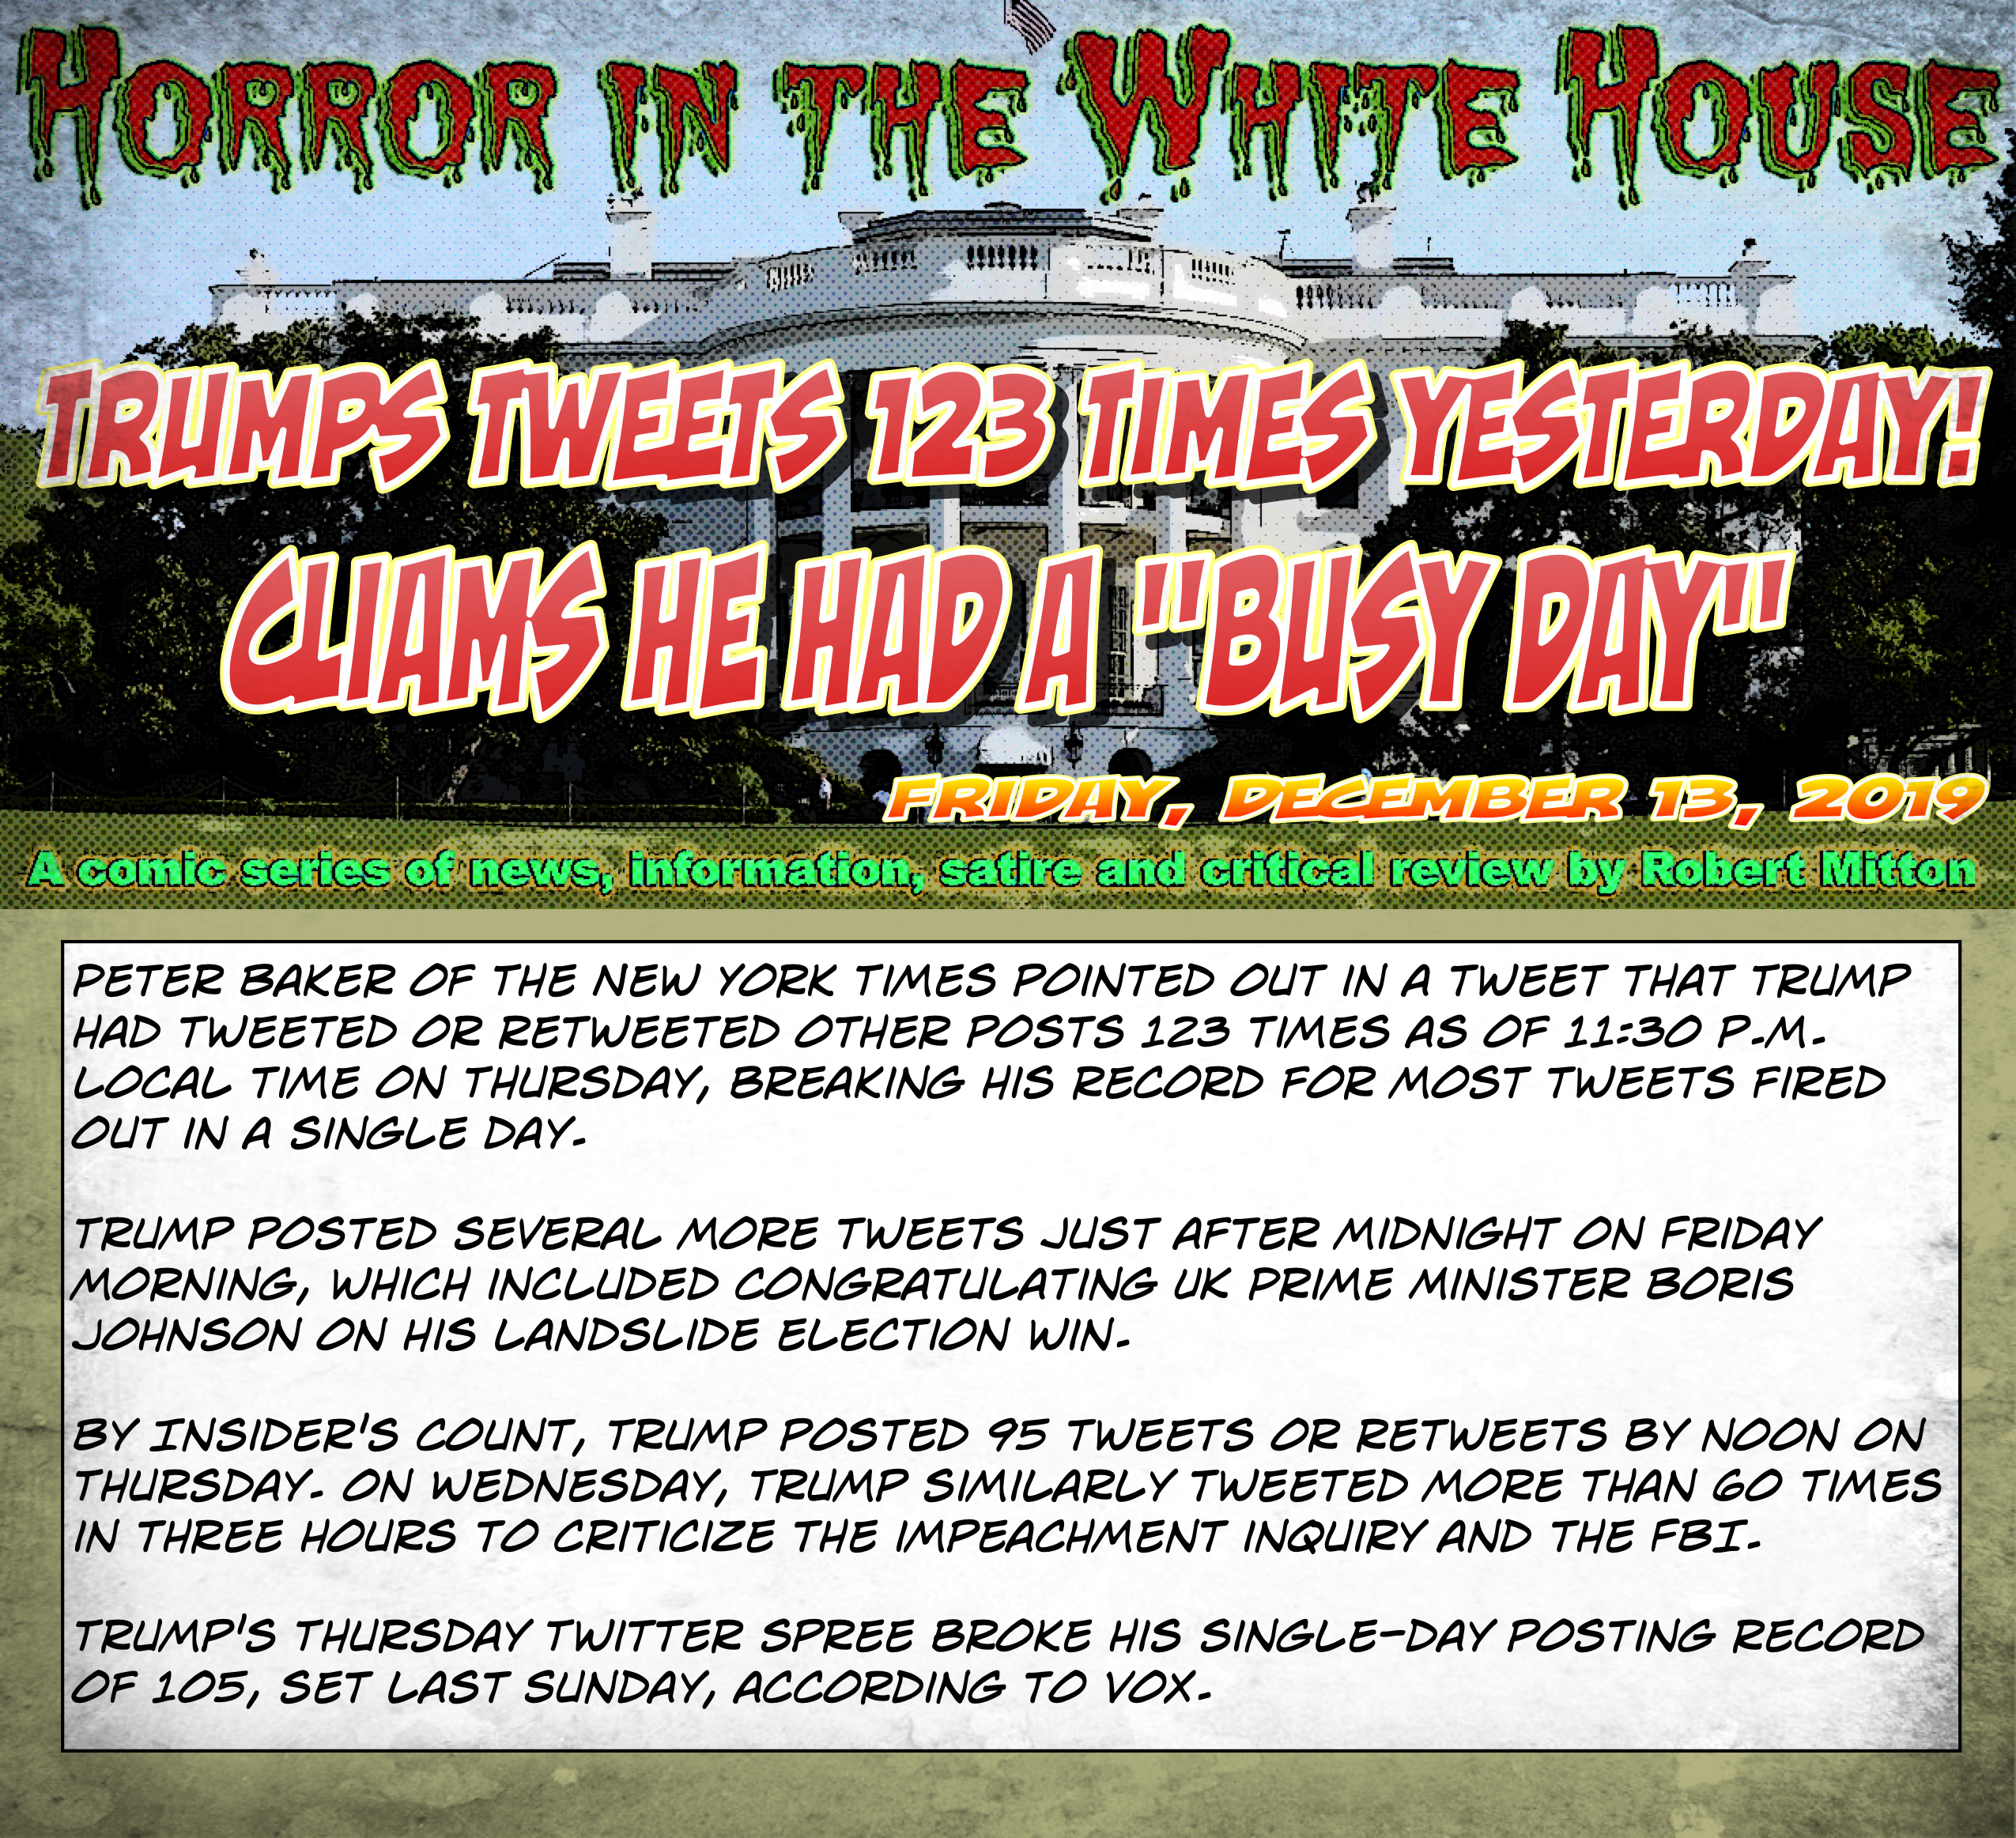 The Horror Daily - Friday, December 13, 2019 - Trump's Tweets